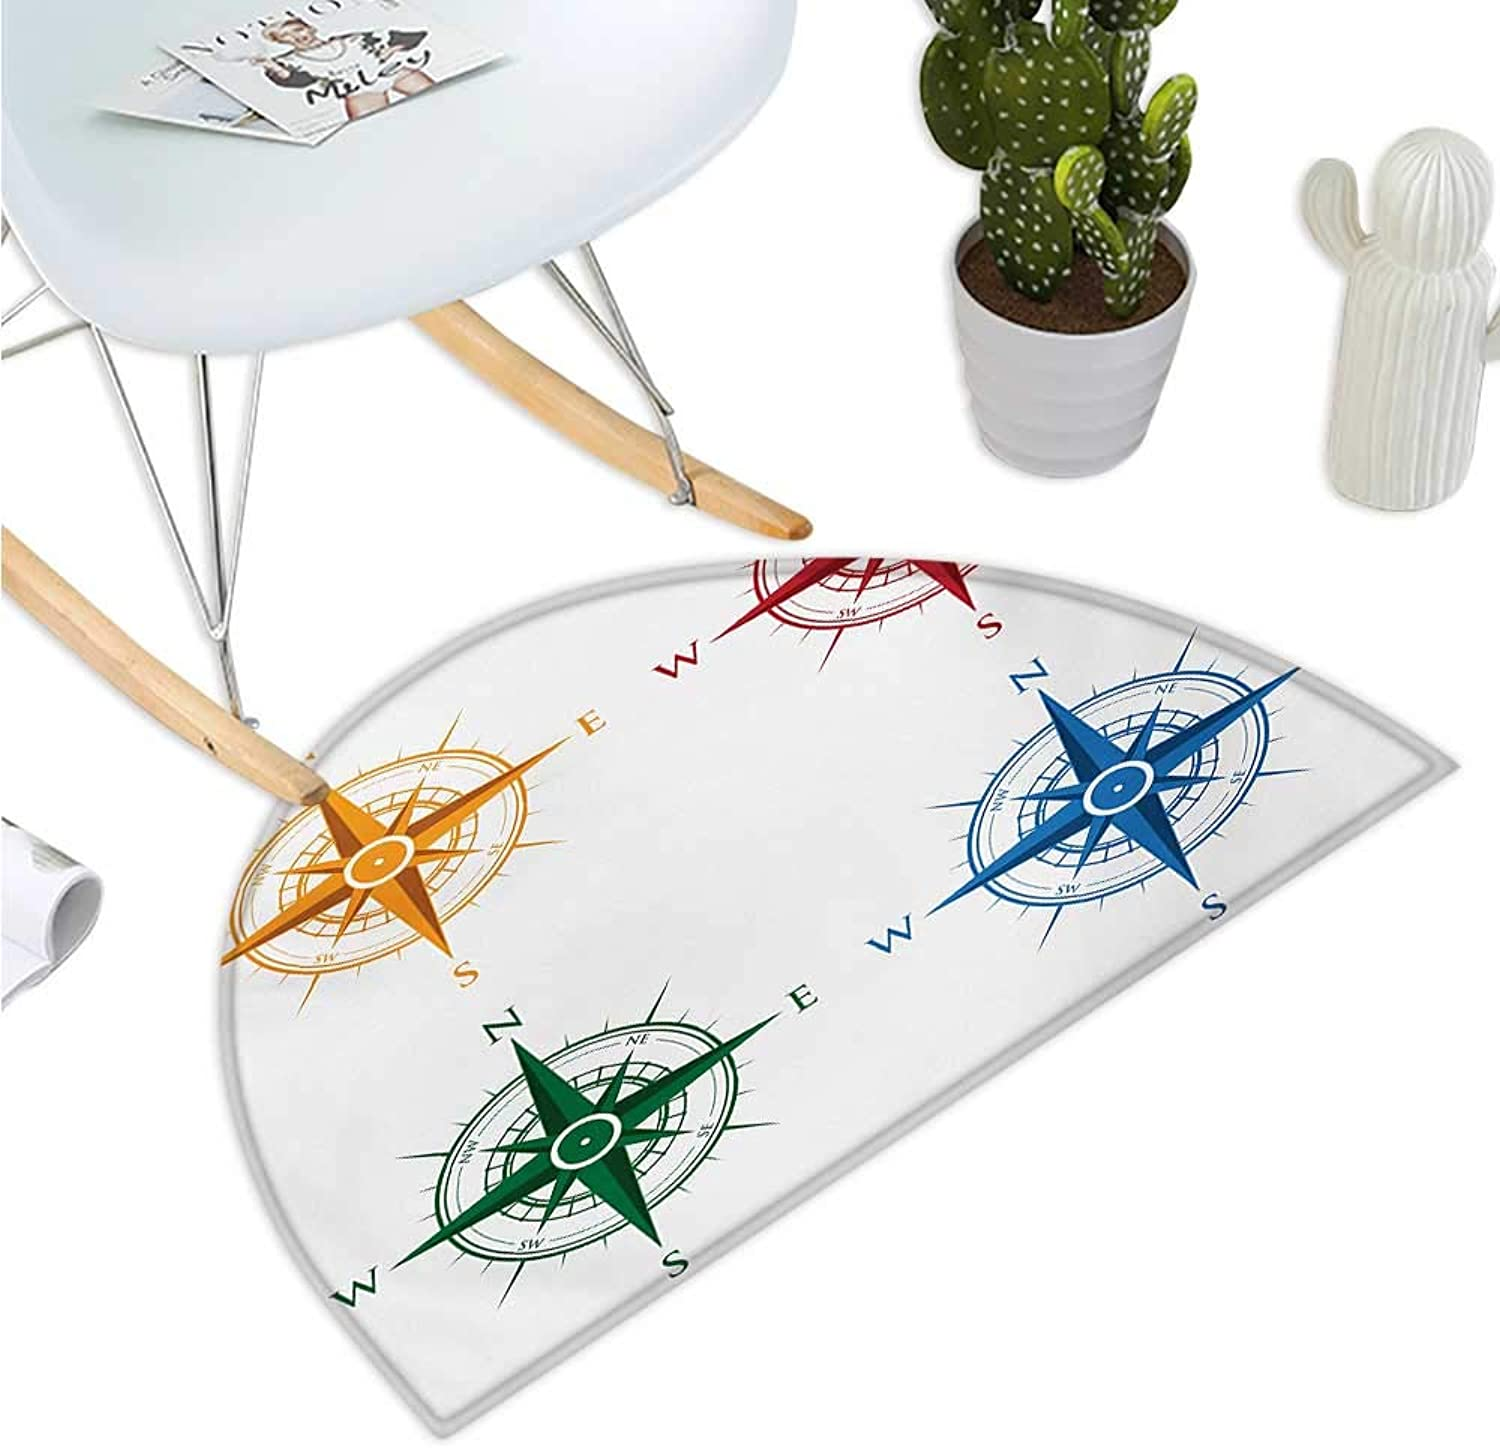 Compass Semicircular Cushion colorful Different Compasses Set Orientation Icons Earths Magnetic Field Find Your Way Entry Door Mat H 35.4  xD 53.1  Multi